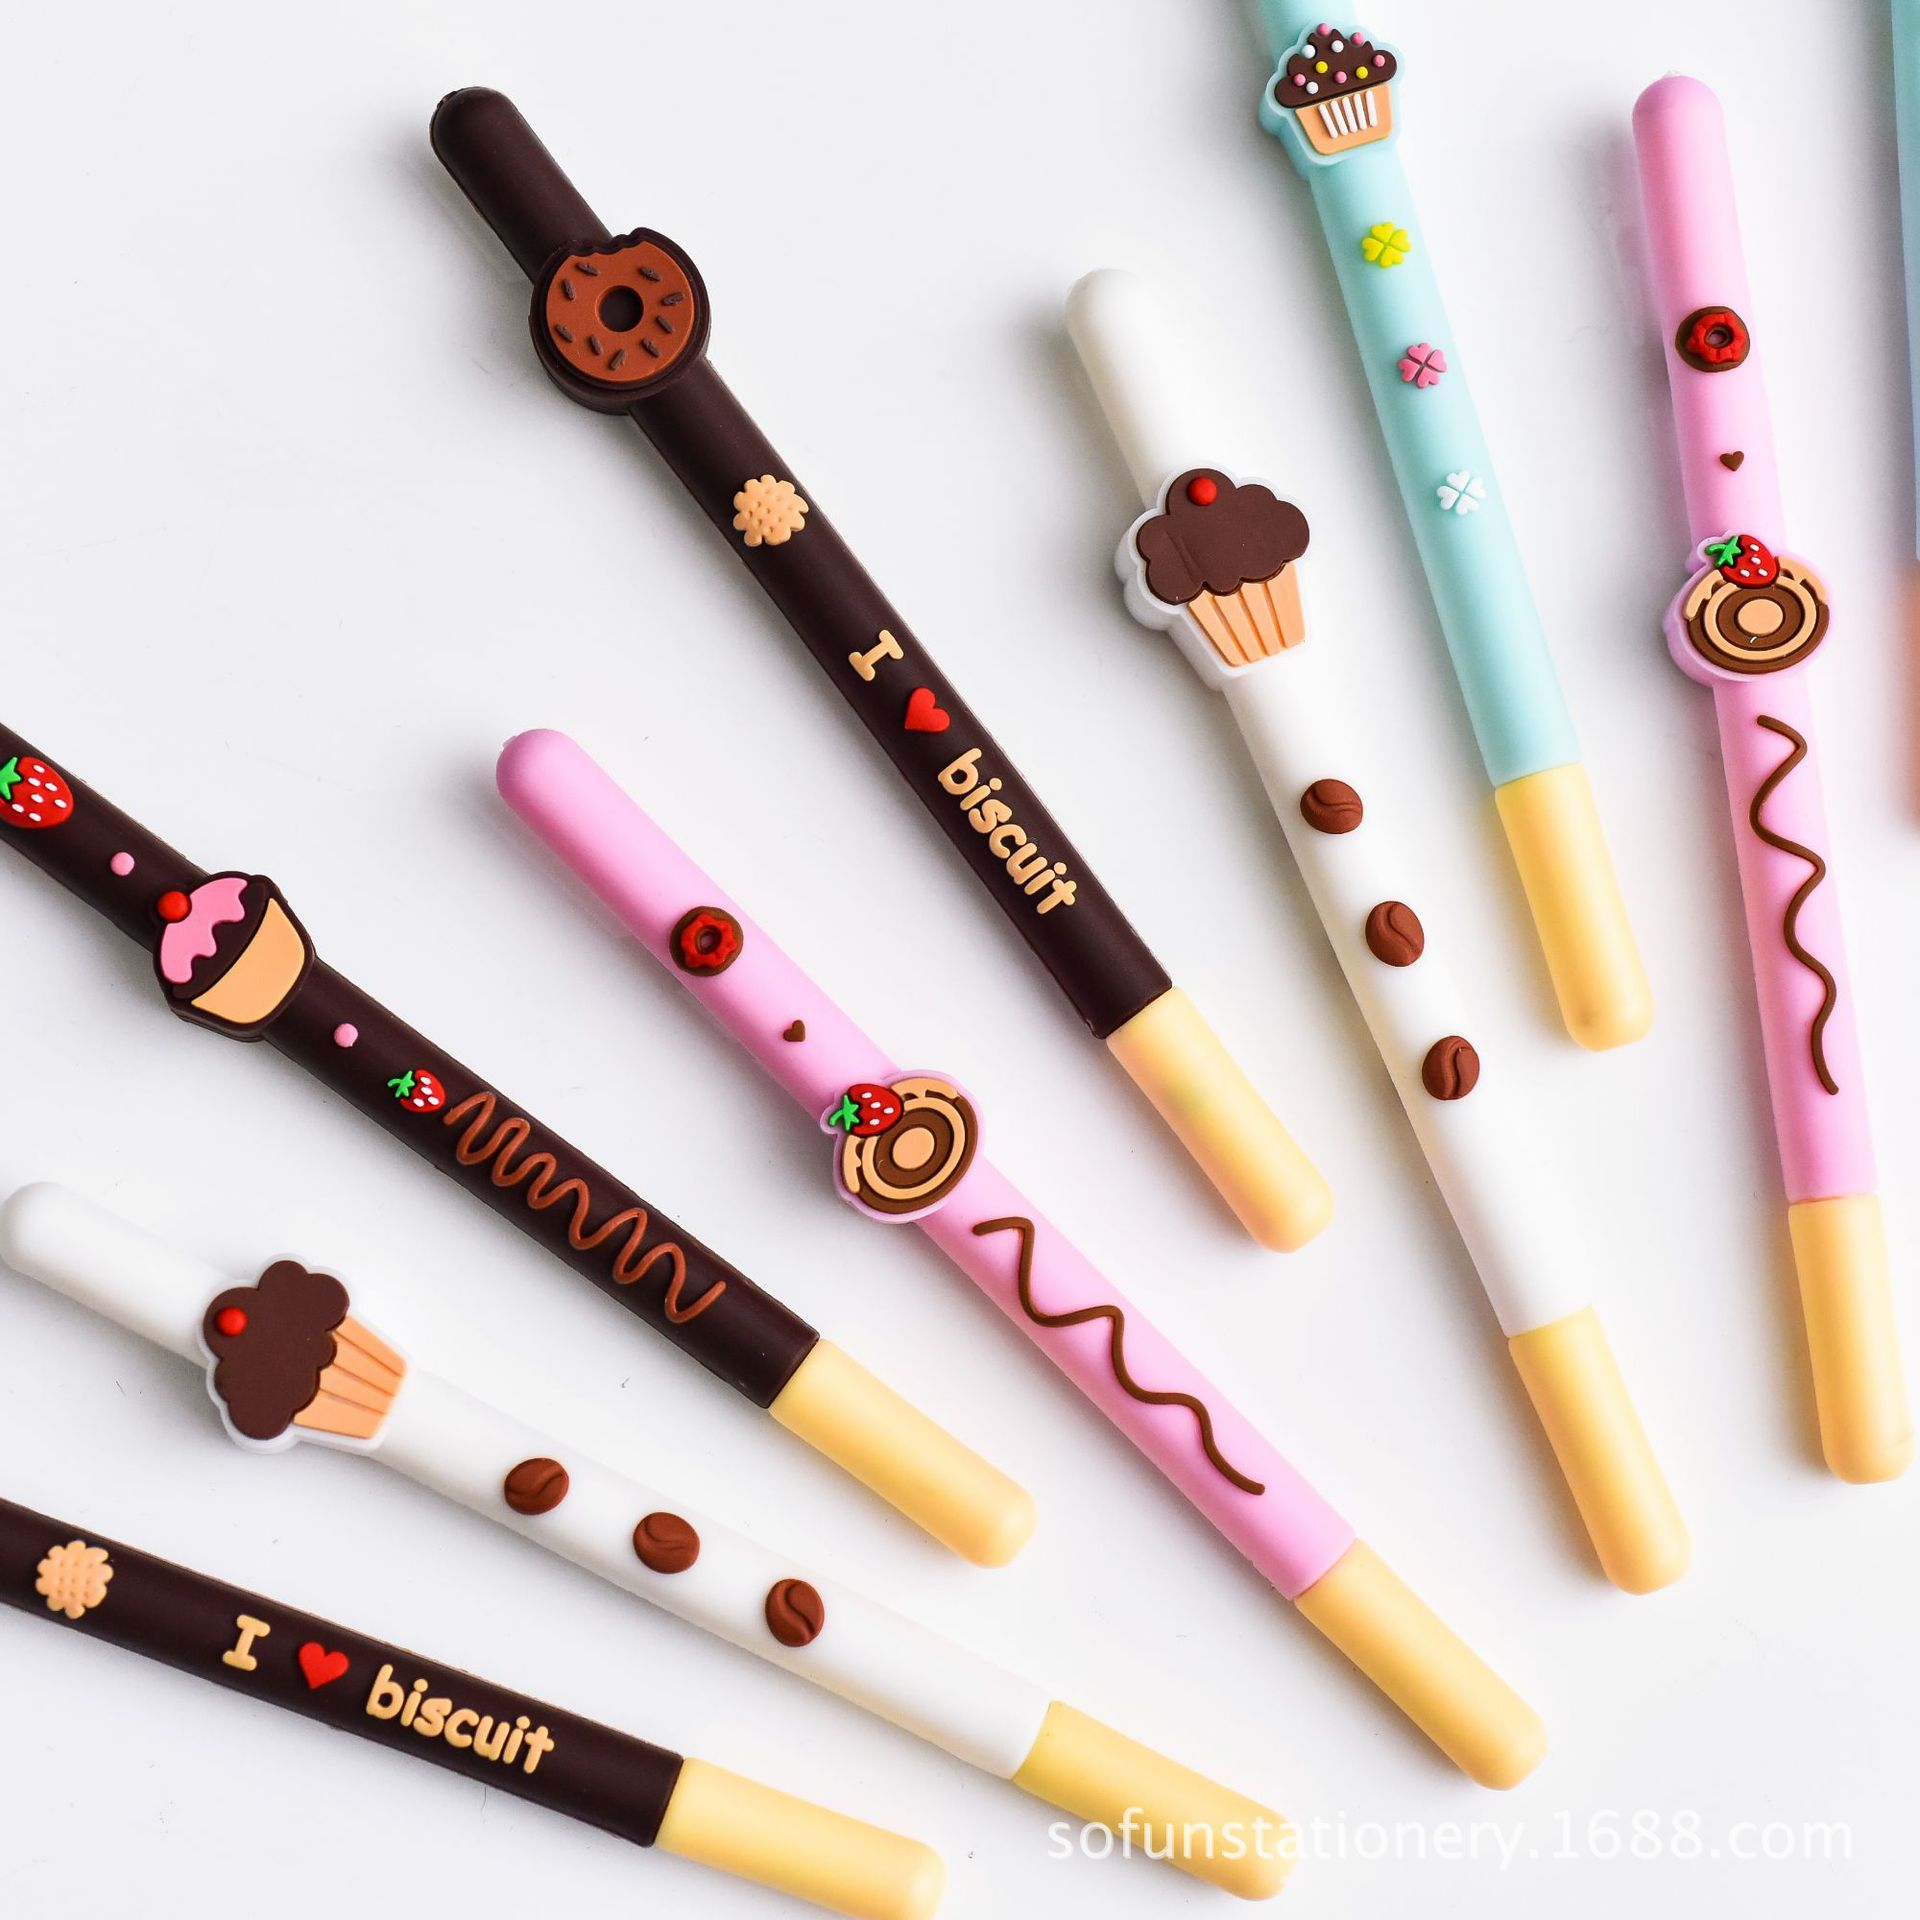 40 Pcs/Lot Chocolate Biscuit Pen Yummy Cake Donut 0.5mm Roller Pen Black Color Ink Signature Stationery School Supplies